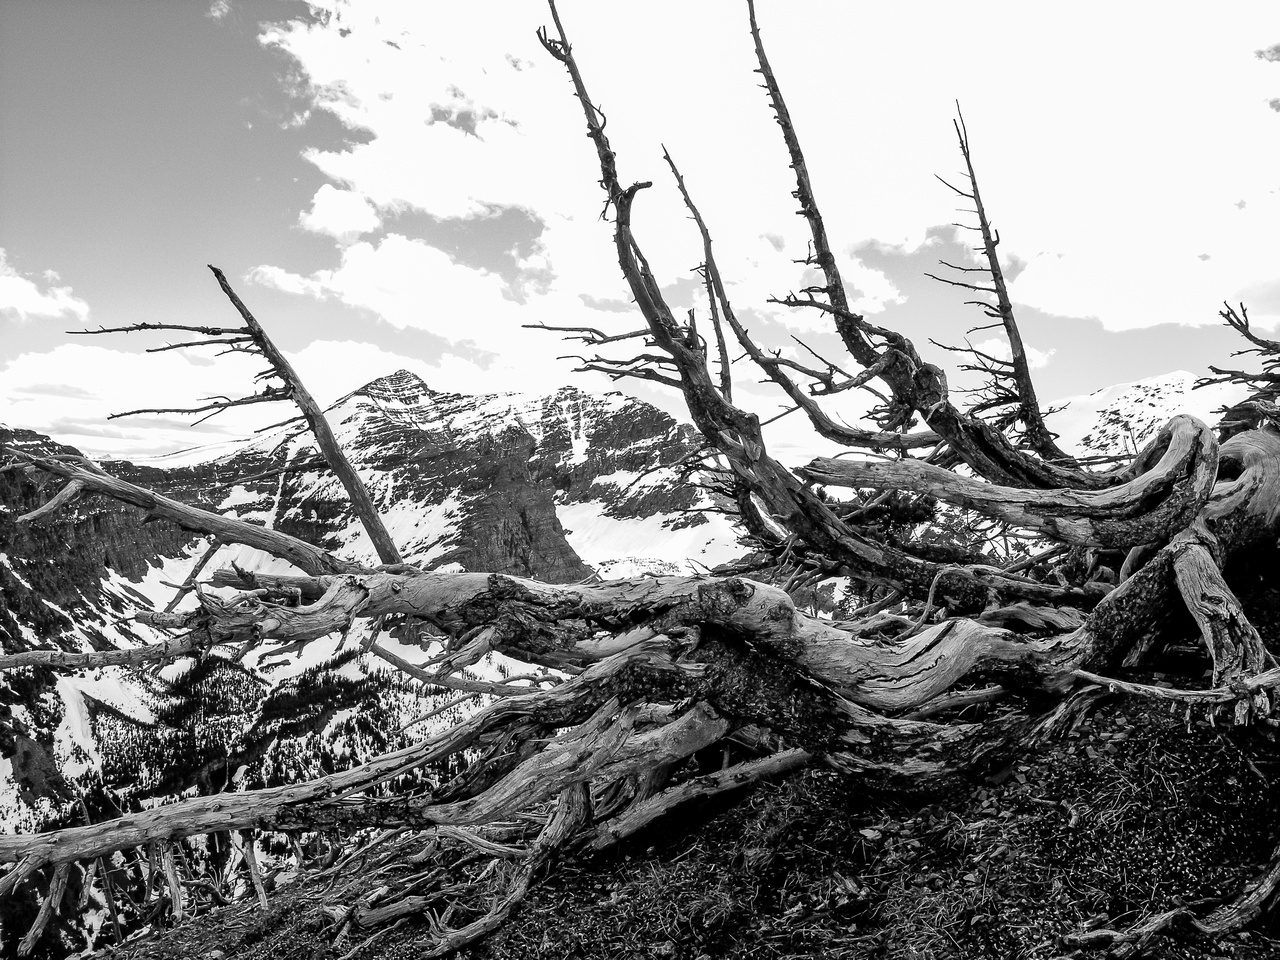 Typical dead tree scenery for the Castle Wilderness.